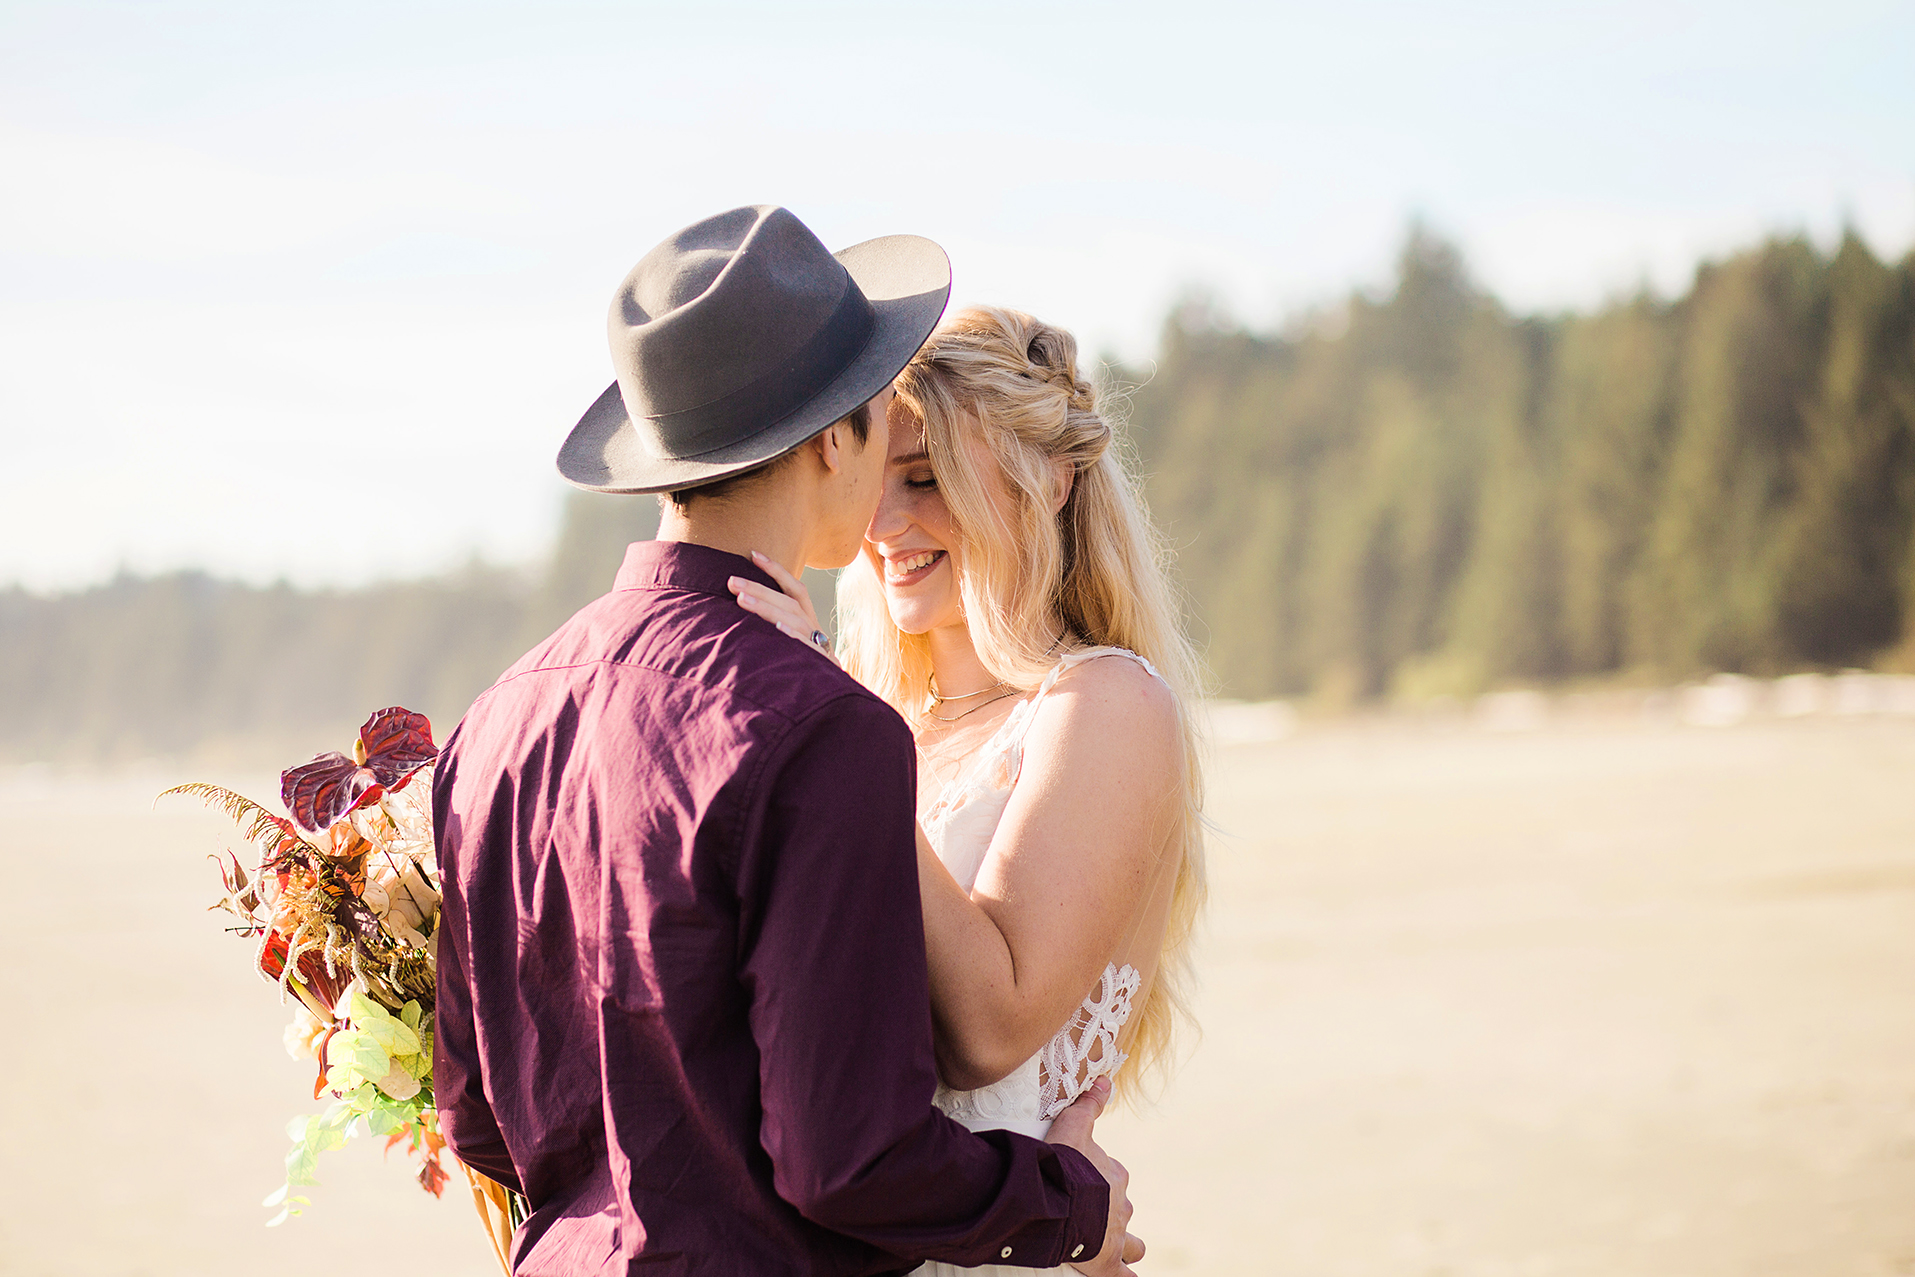 Couples lovin on a beach in Tofino - Saskatoon SK based Photographer